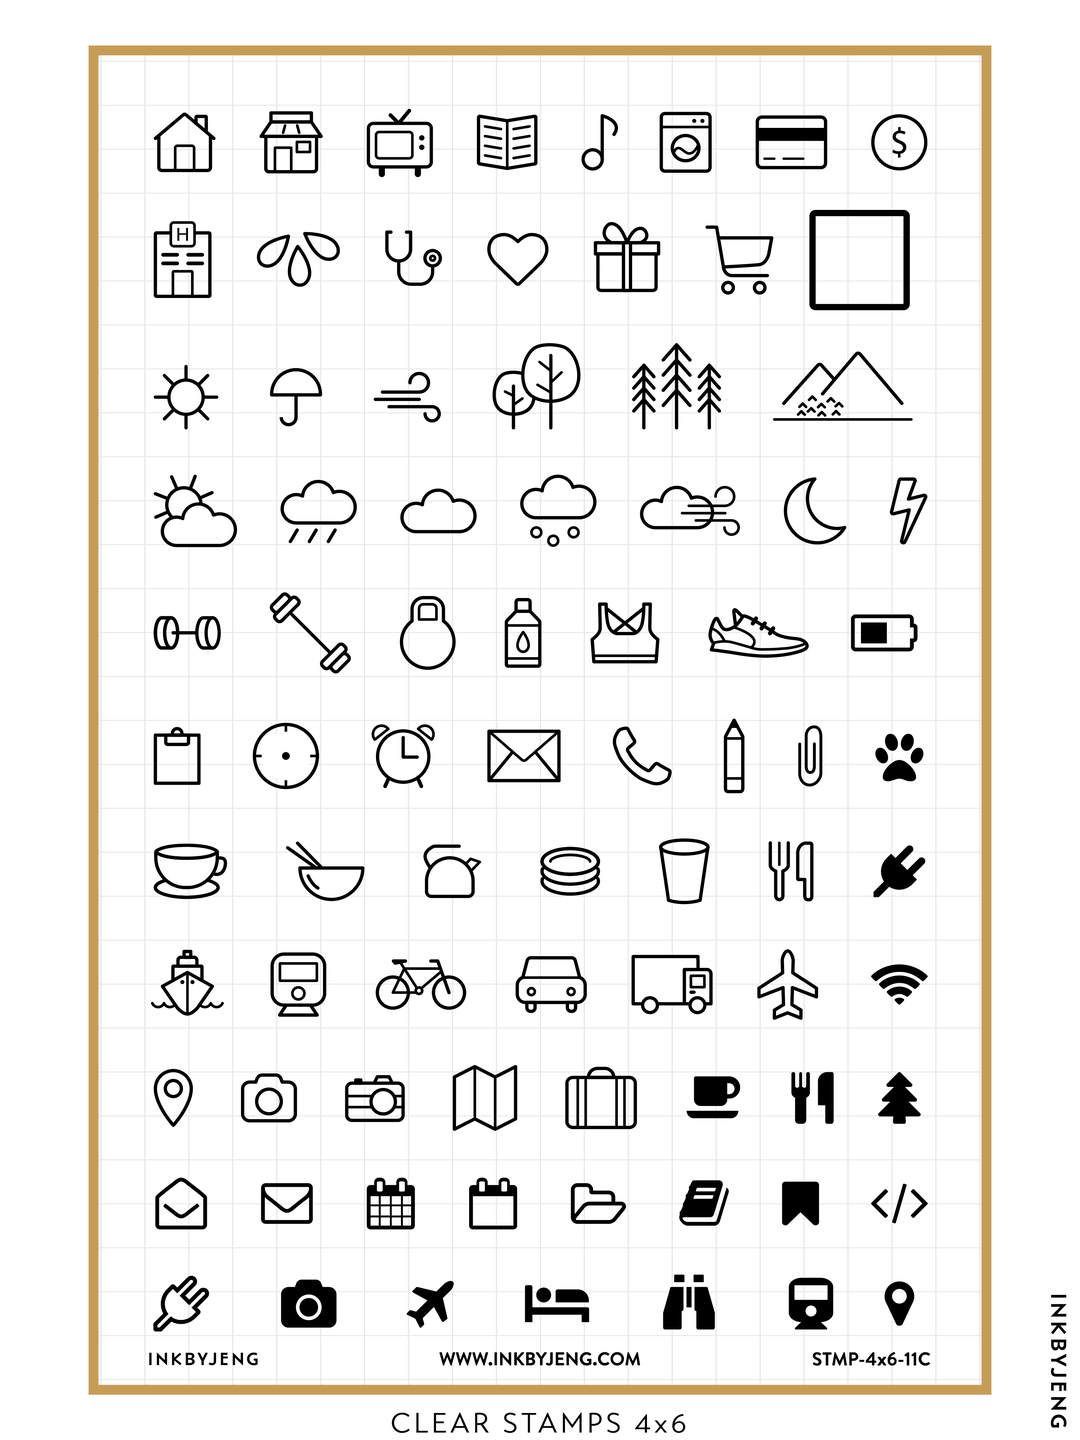 Download 1900 Free Ios 7 Icons Icons8 Bullet Journal Ideas Pages Doodle Art Journals Bullet Journal Writing